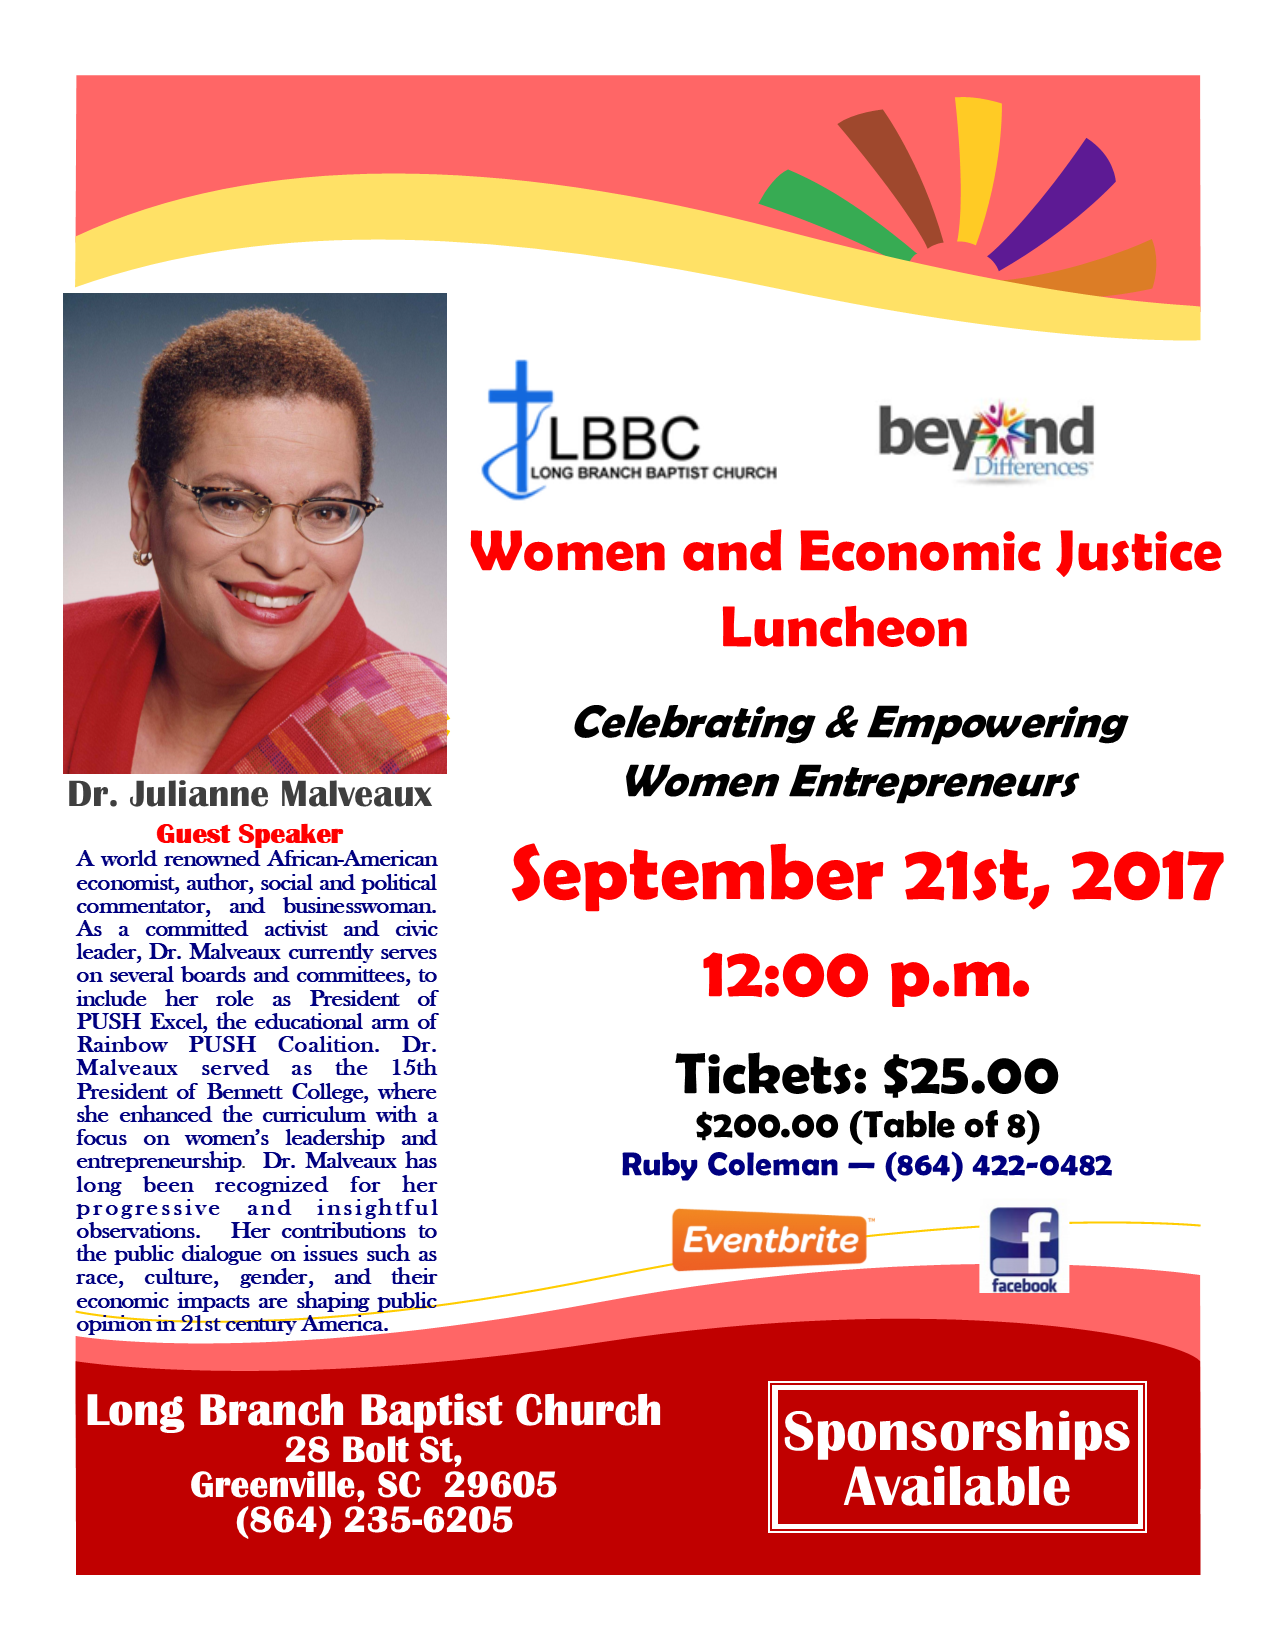 Women and Economic Justice Luncheon